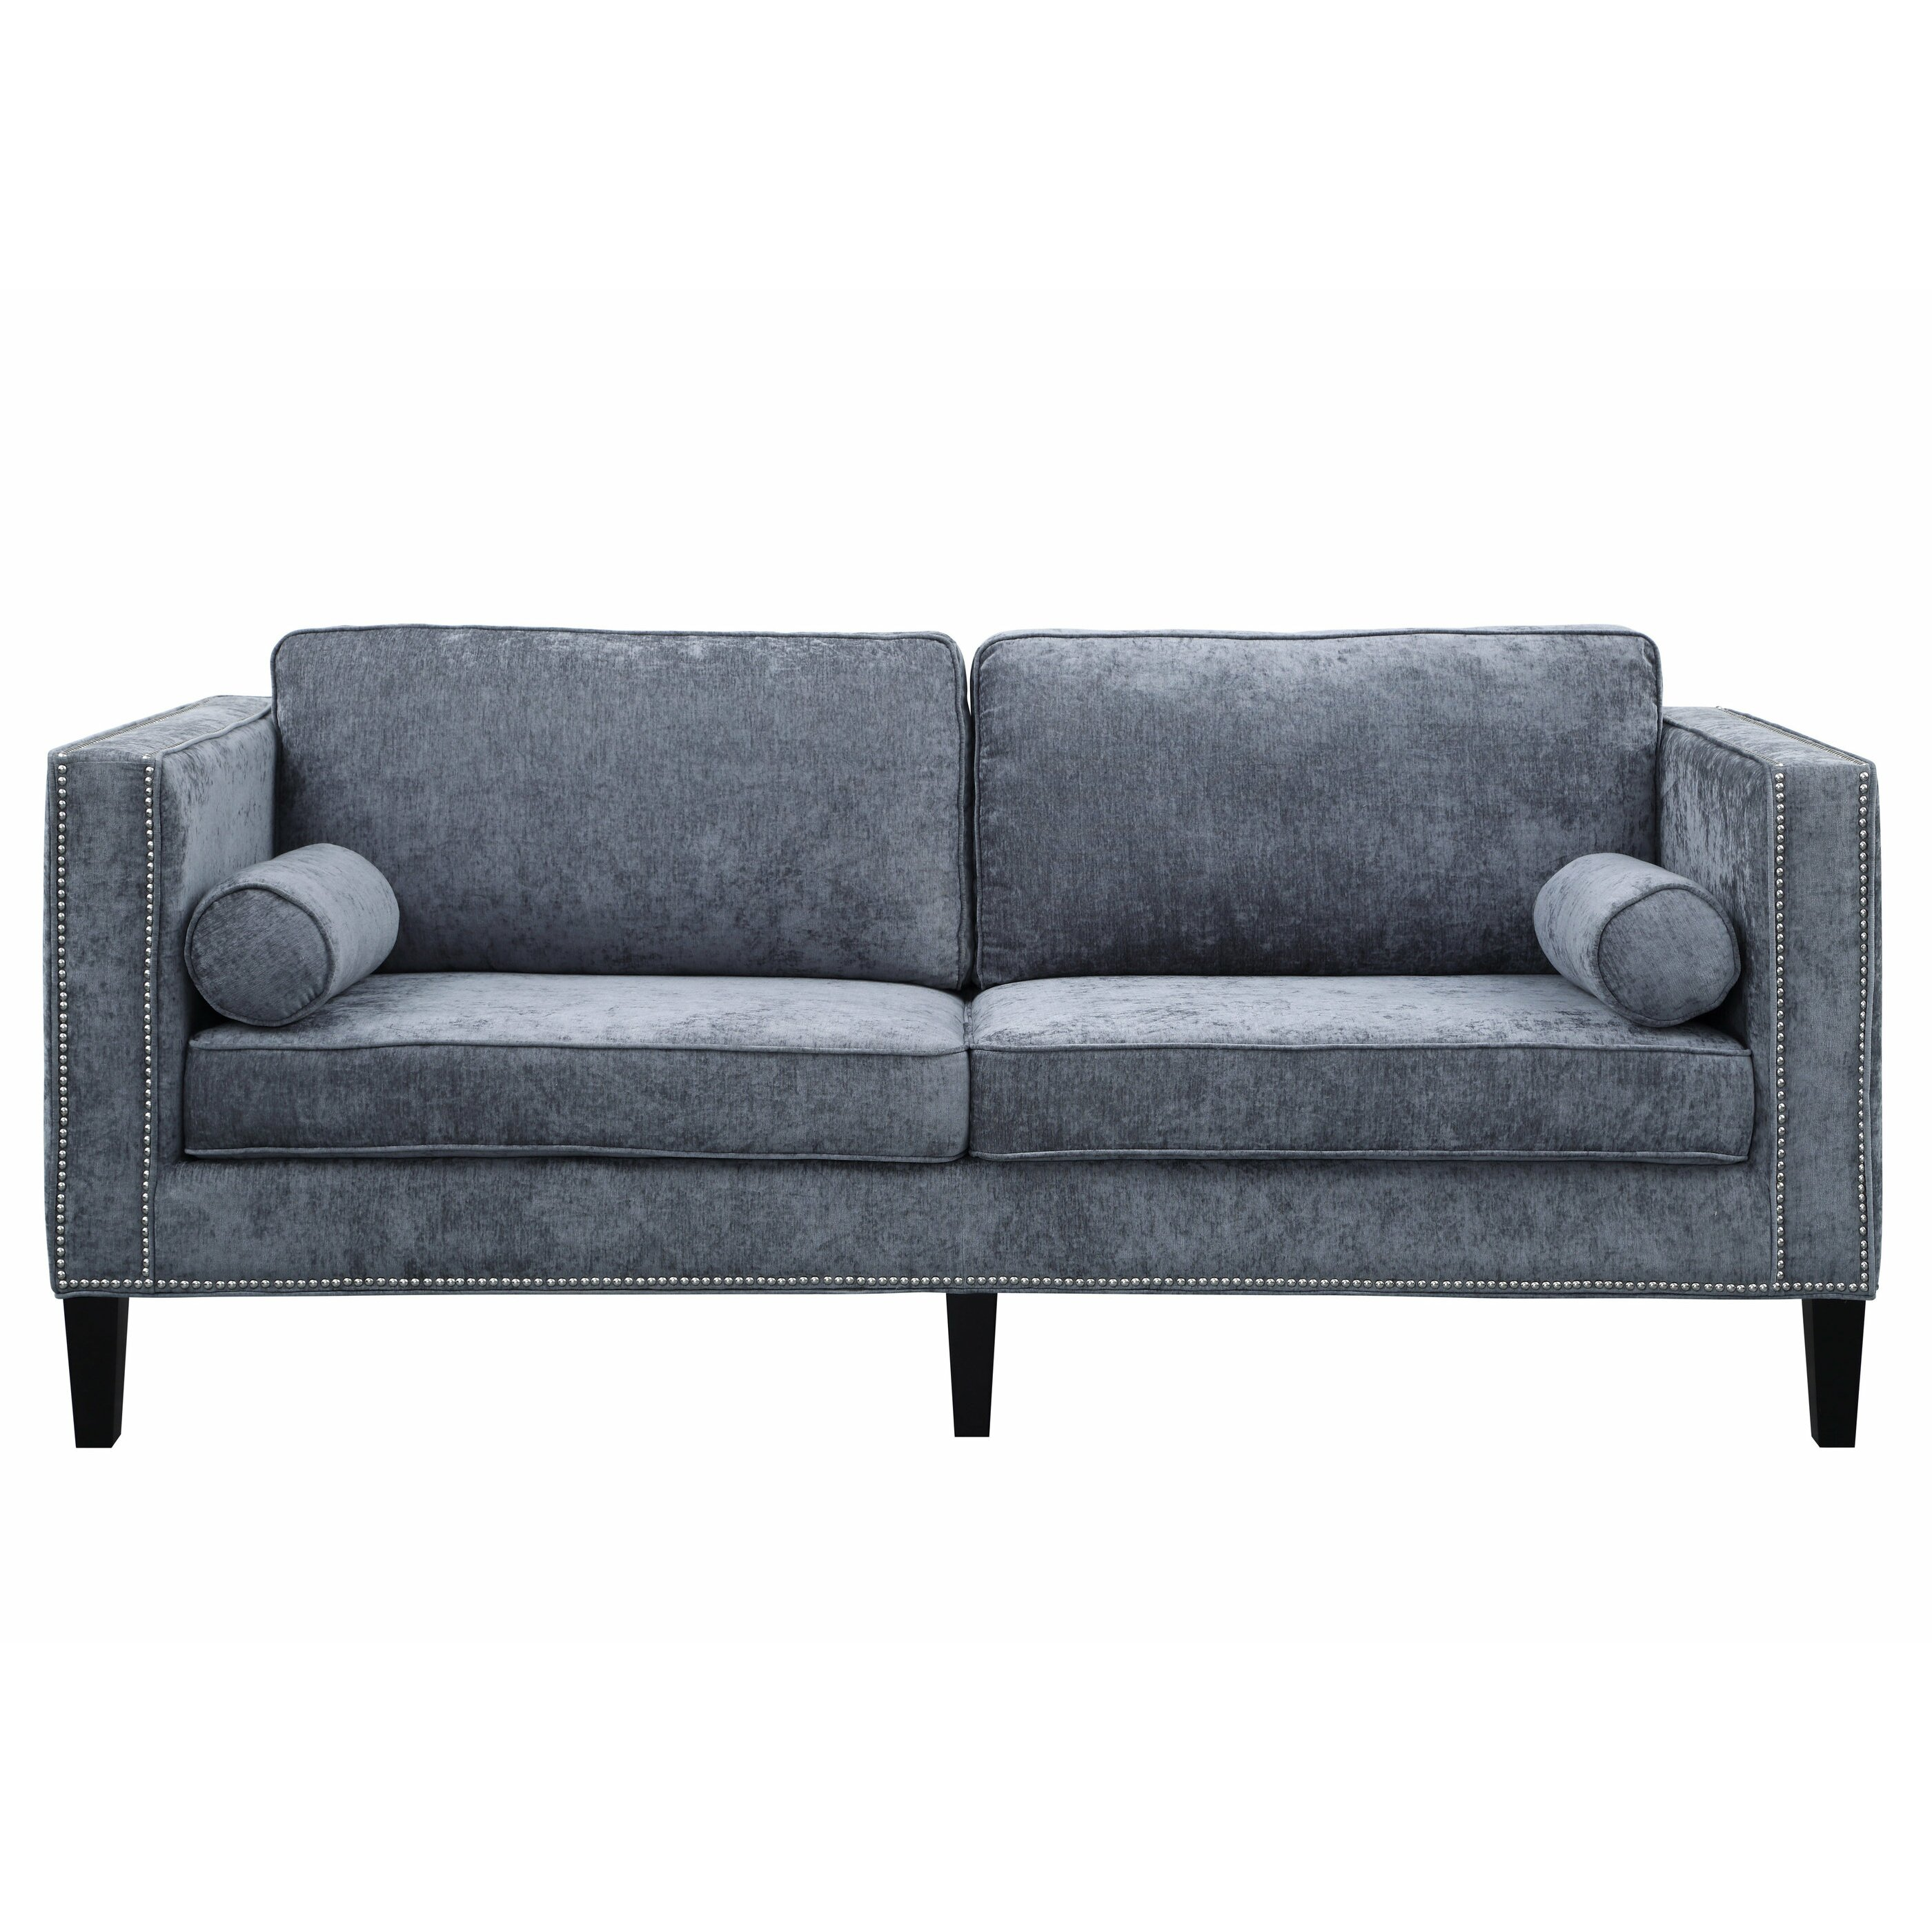 Tov cooper sofa reviews wayfair for Furniture 2 day shipping